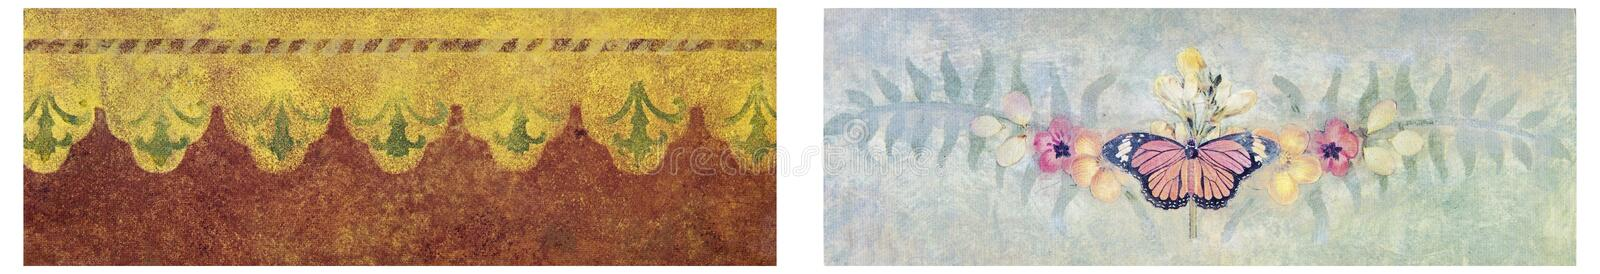 Wallpaper texture soft design collage. Artistic vintage retro pastel color designs of wallpaper backgrounds with butterfly flowers floral fern leafs for borders royalty free stock photo